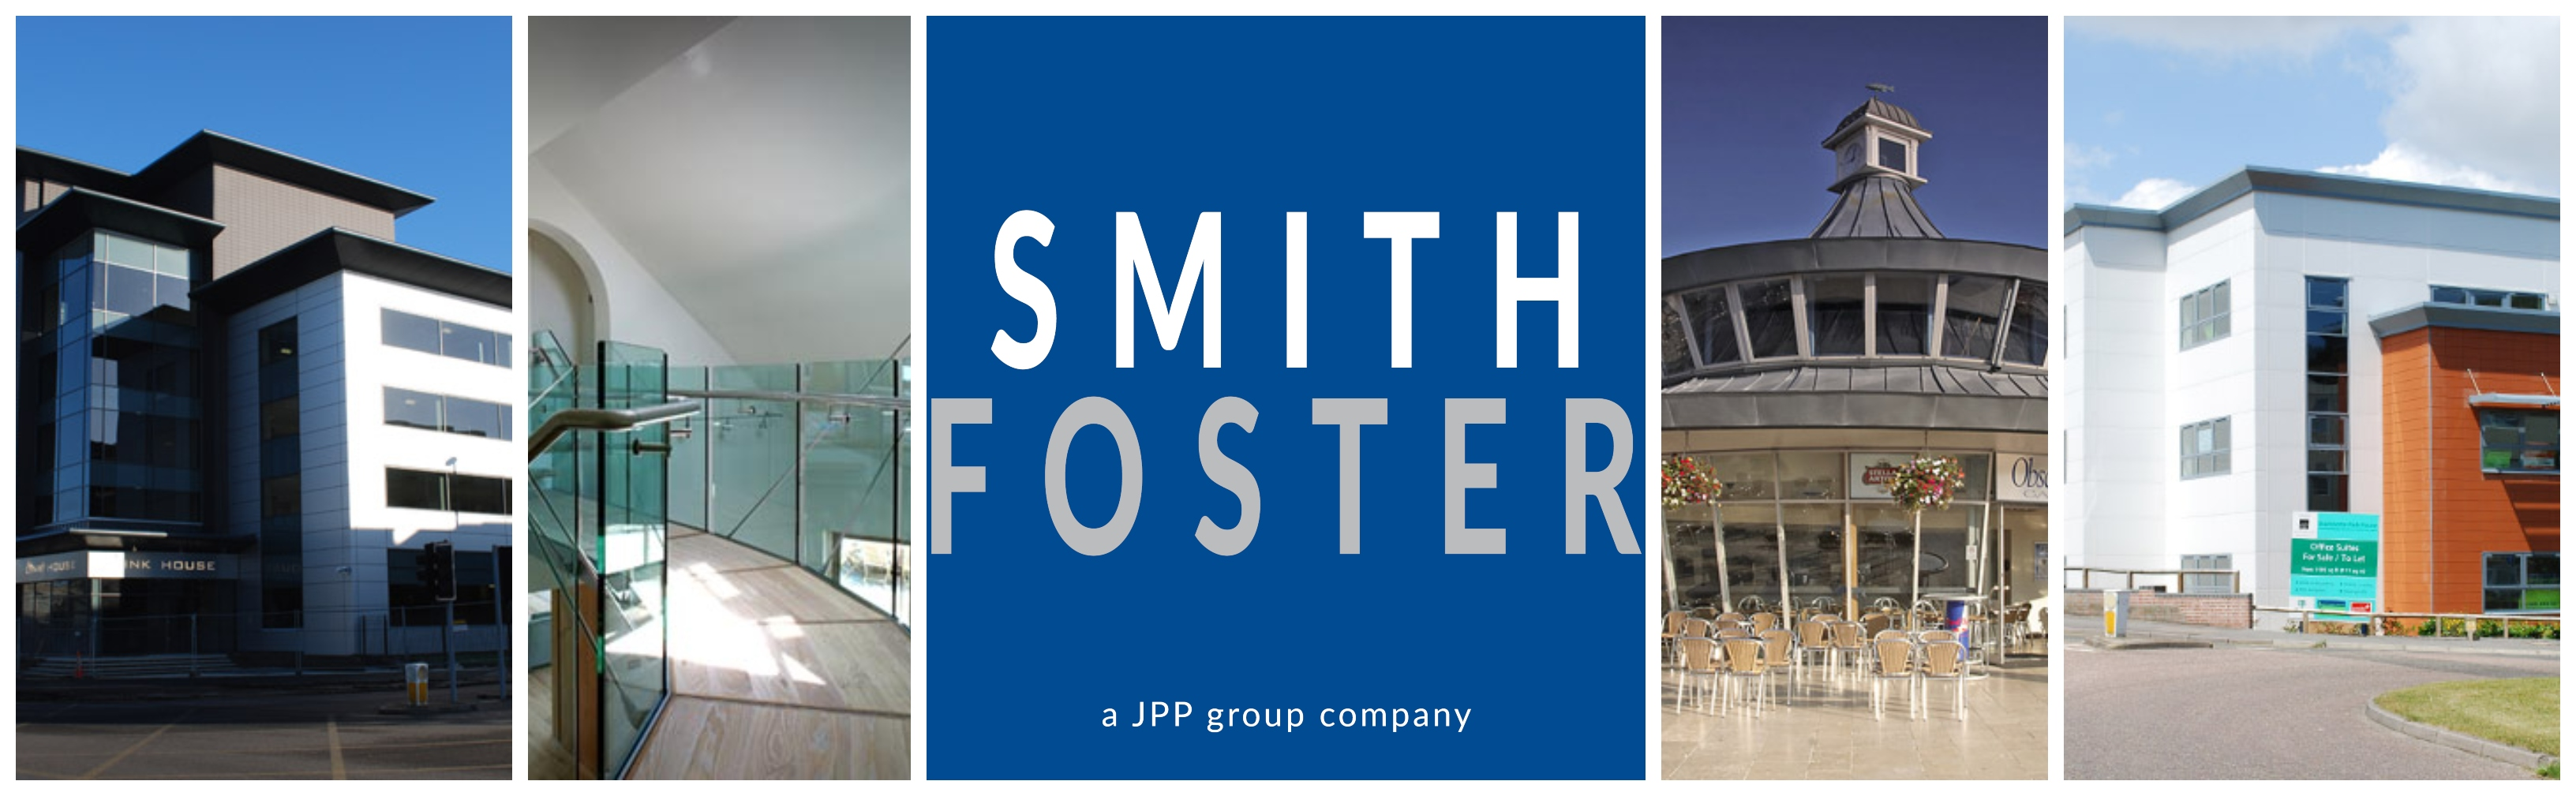 Smith Foster